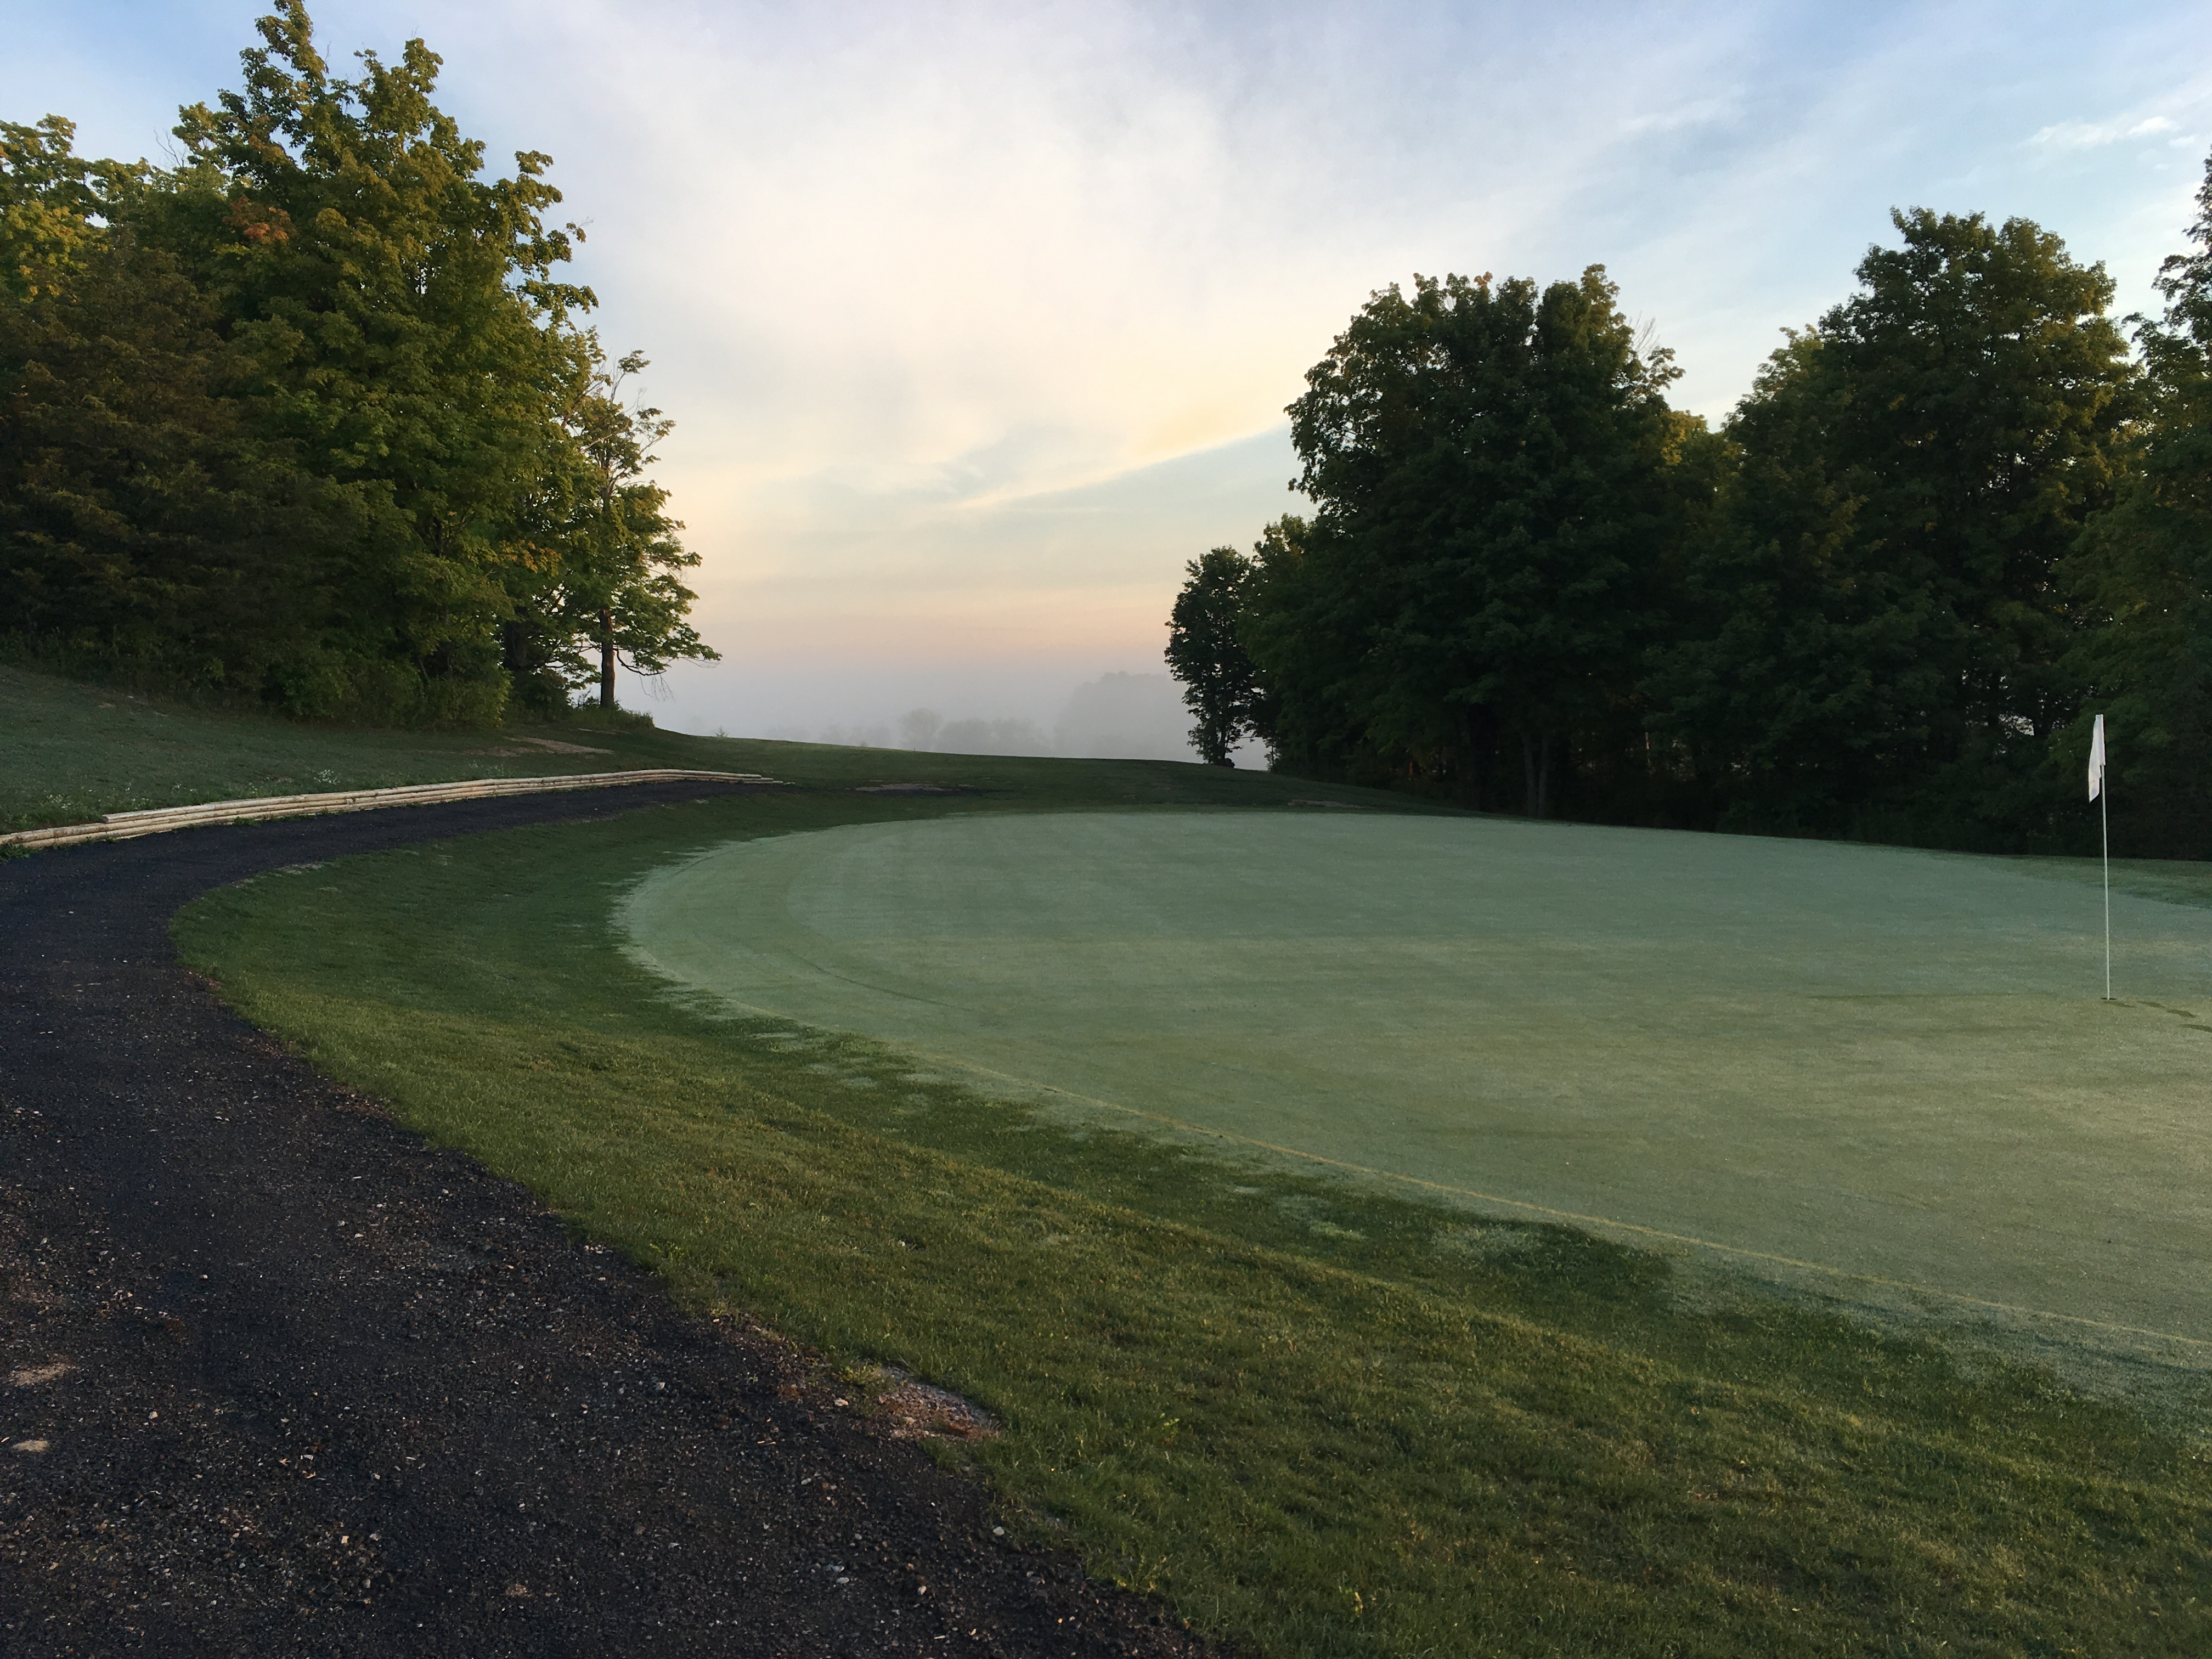 Hole #9's Green